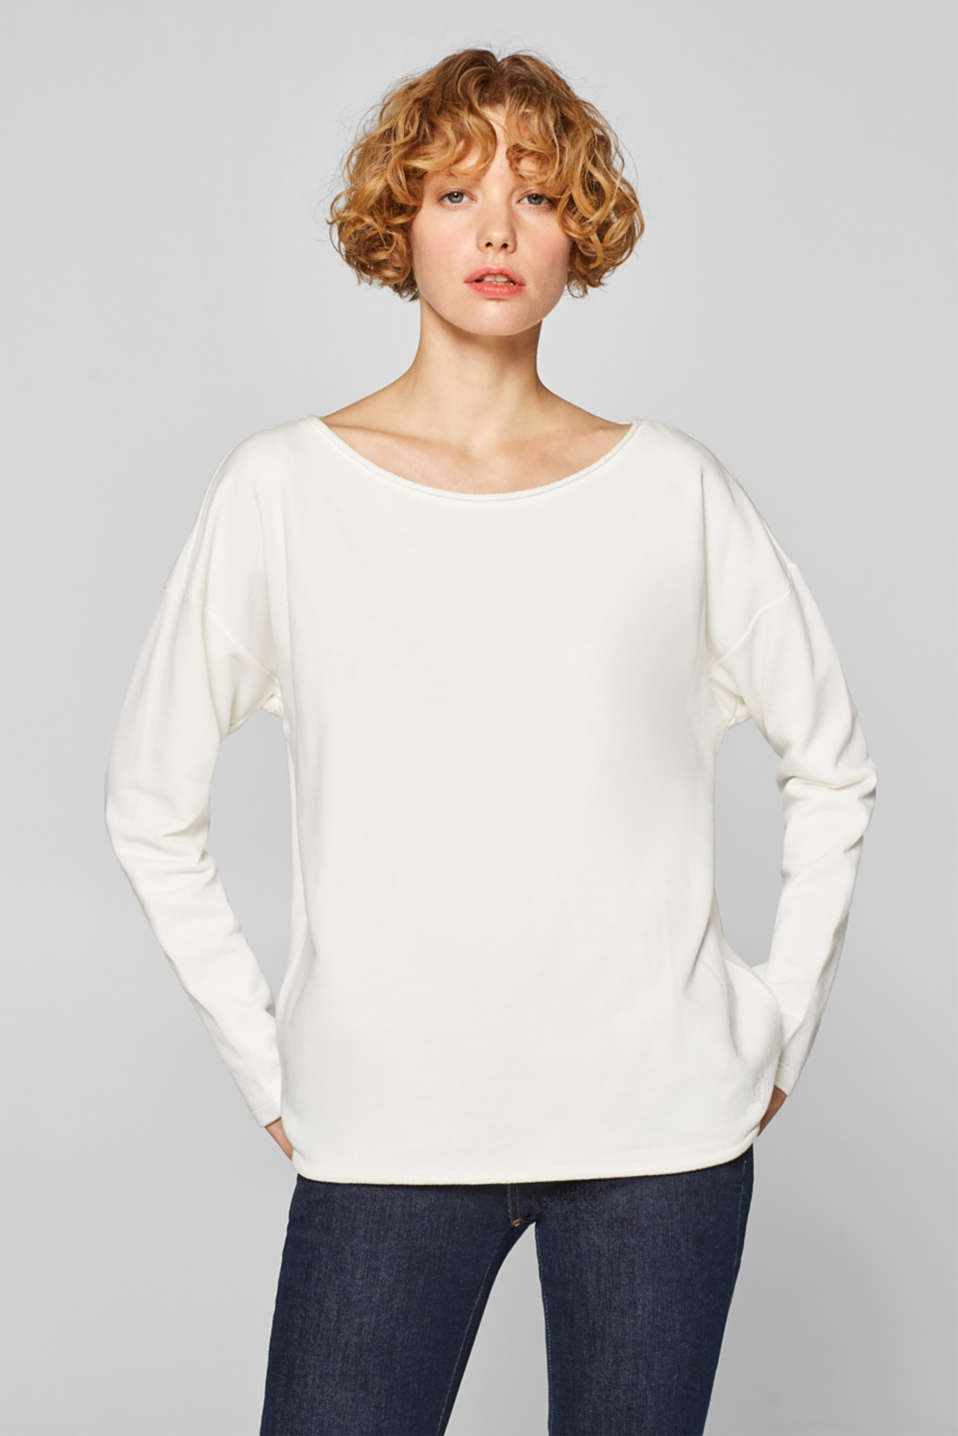 edc - Sweatshirt with rolled edges, 100% cotton